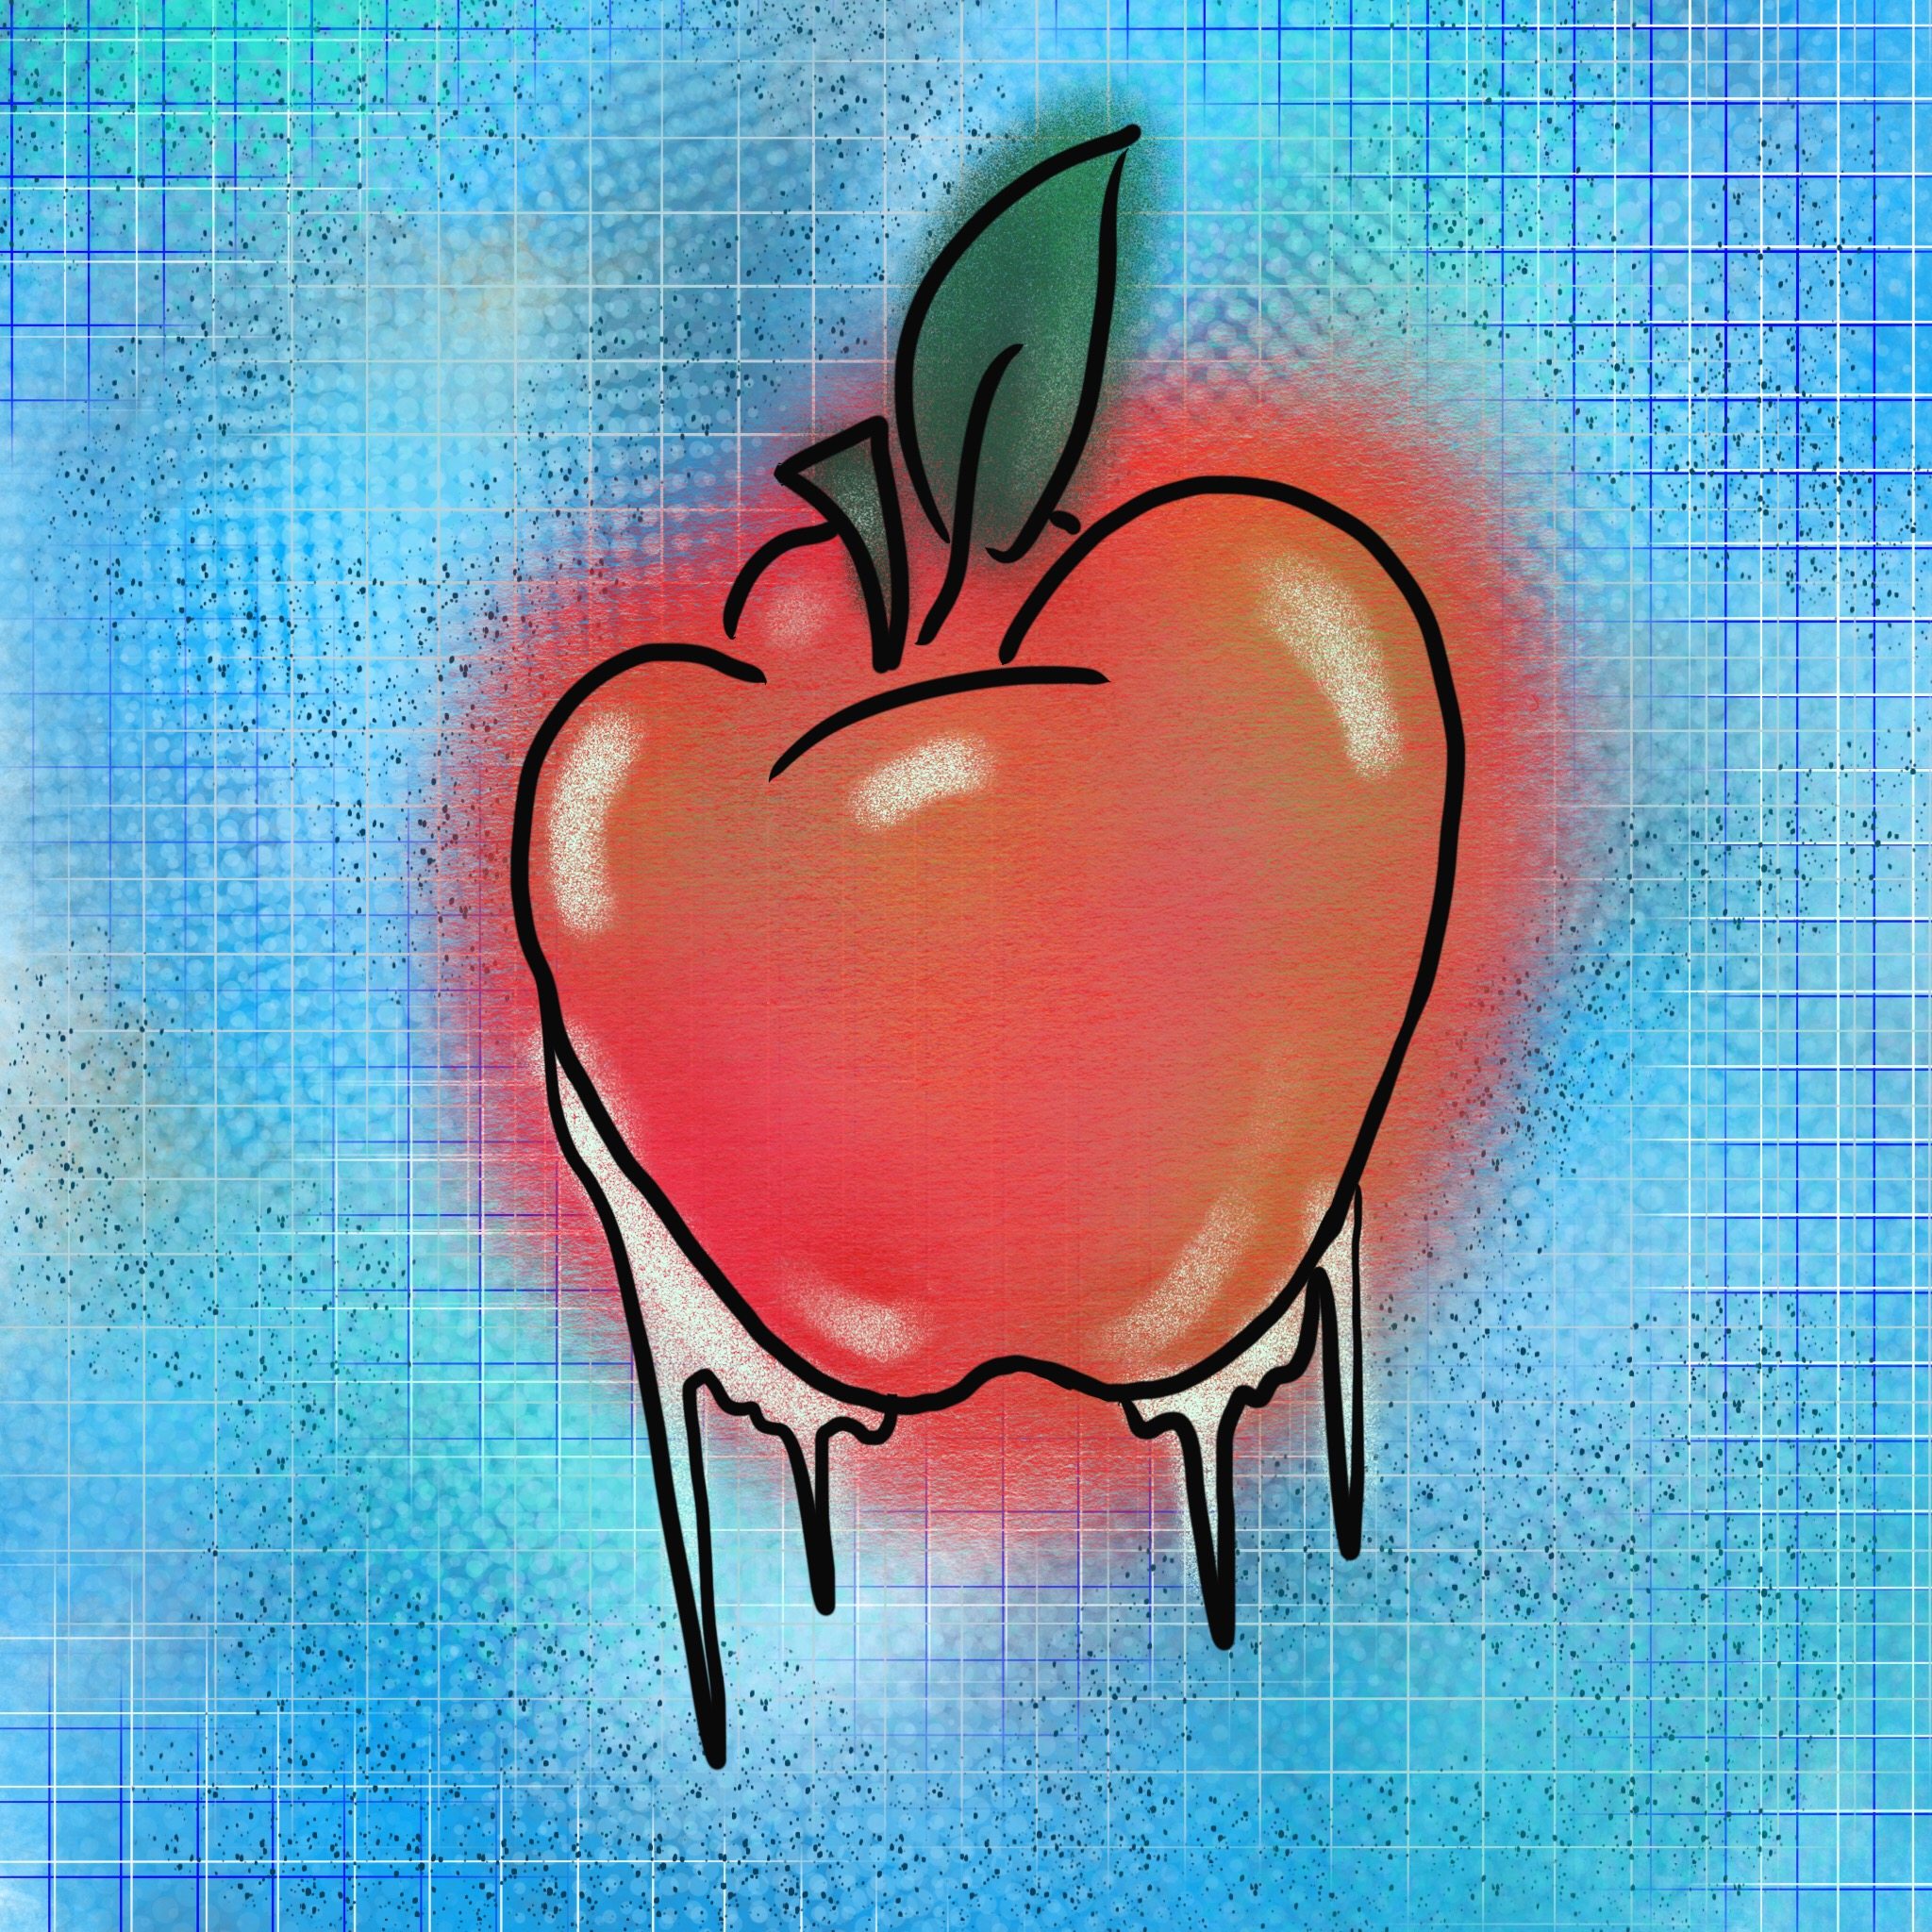 icy apple.JPG